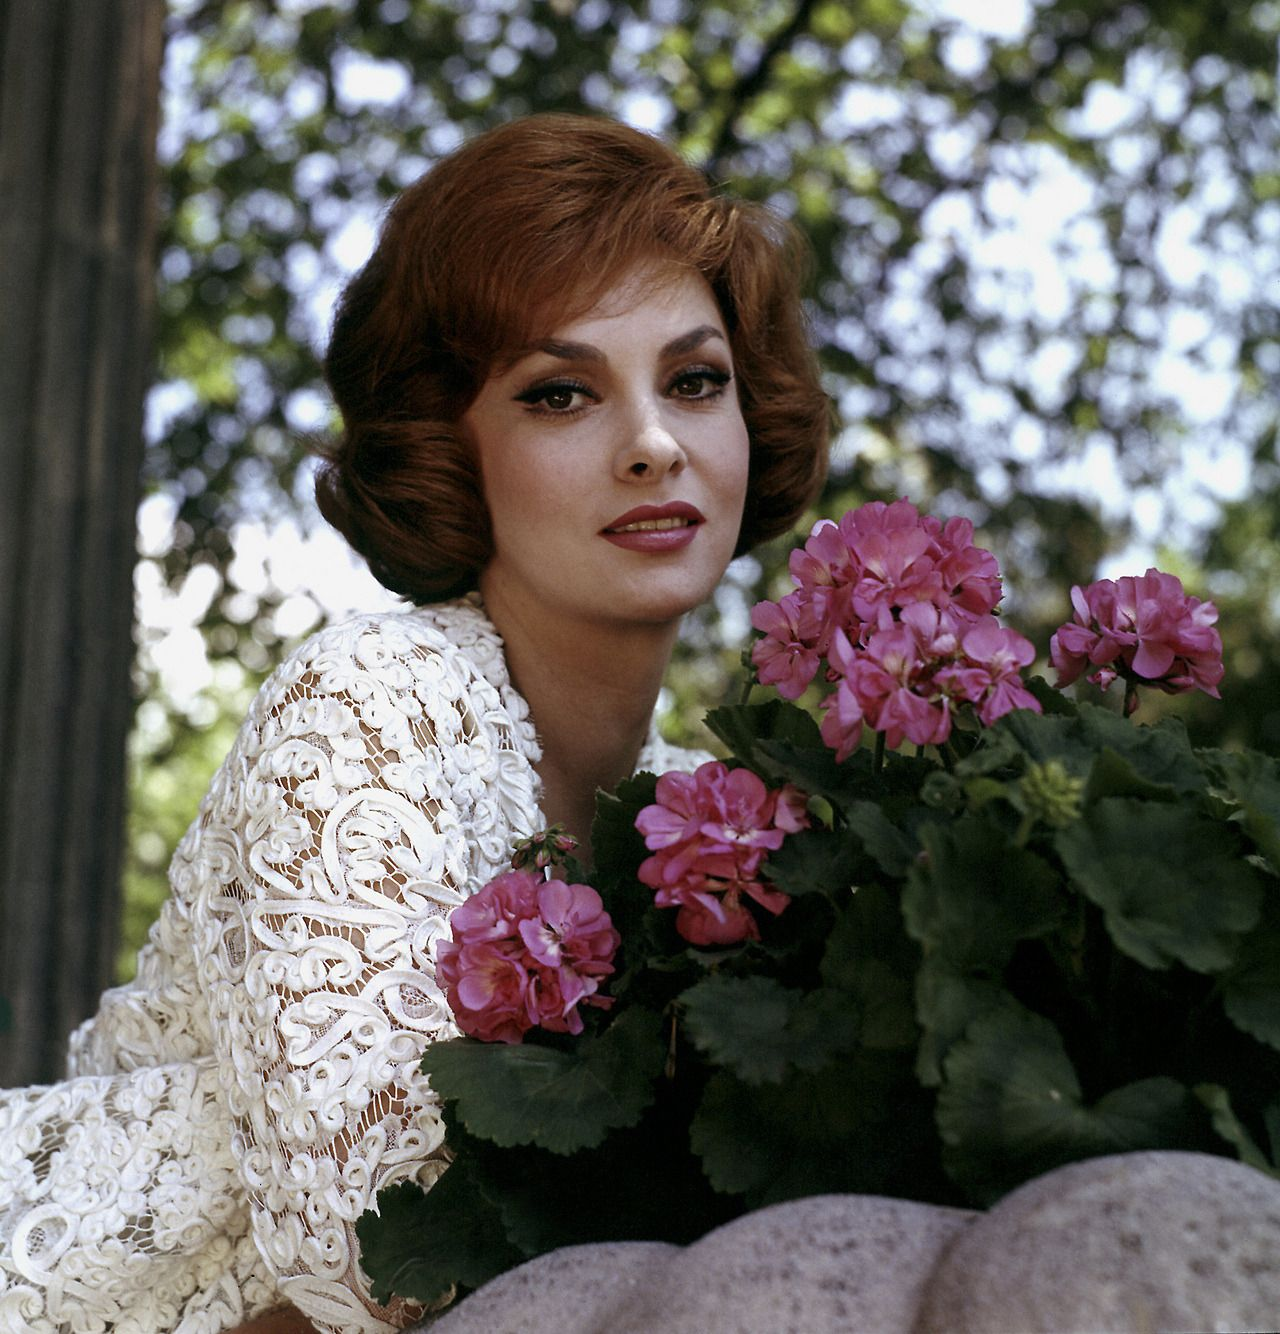 Gina Lollobrigida (born 1927) Gina Lollobrigida (born 1927) new pictures